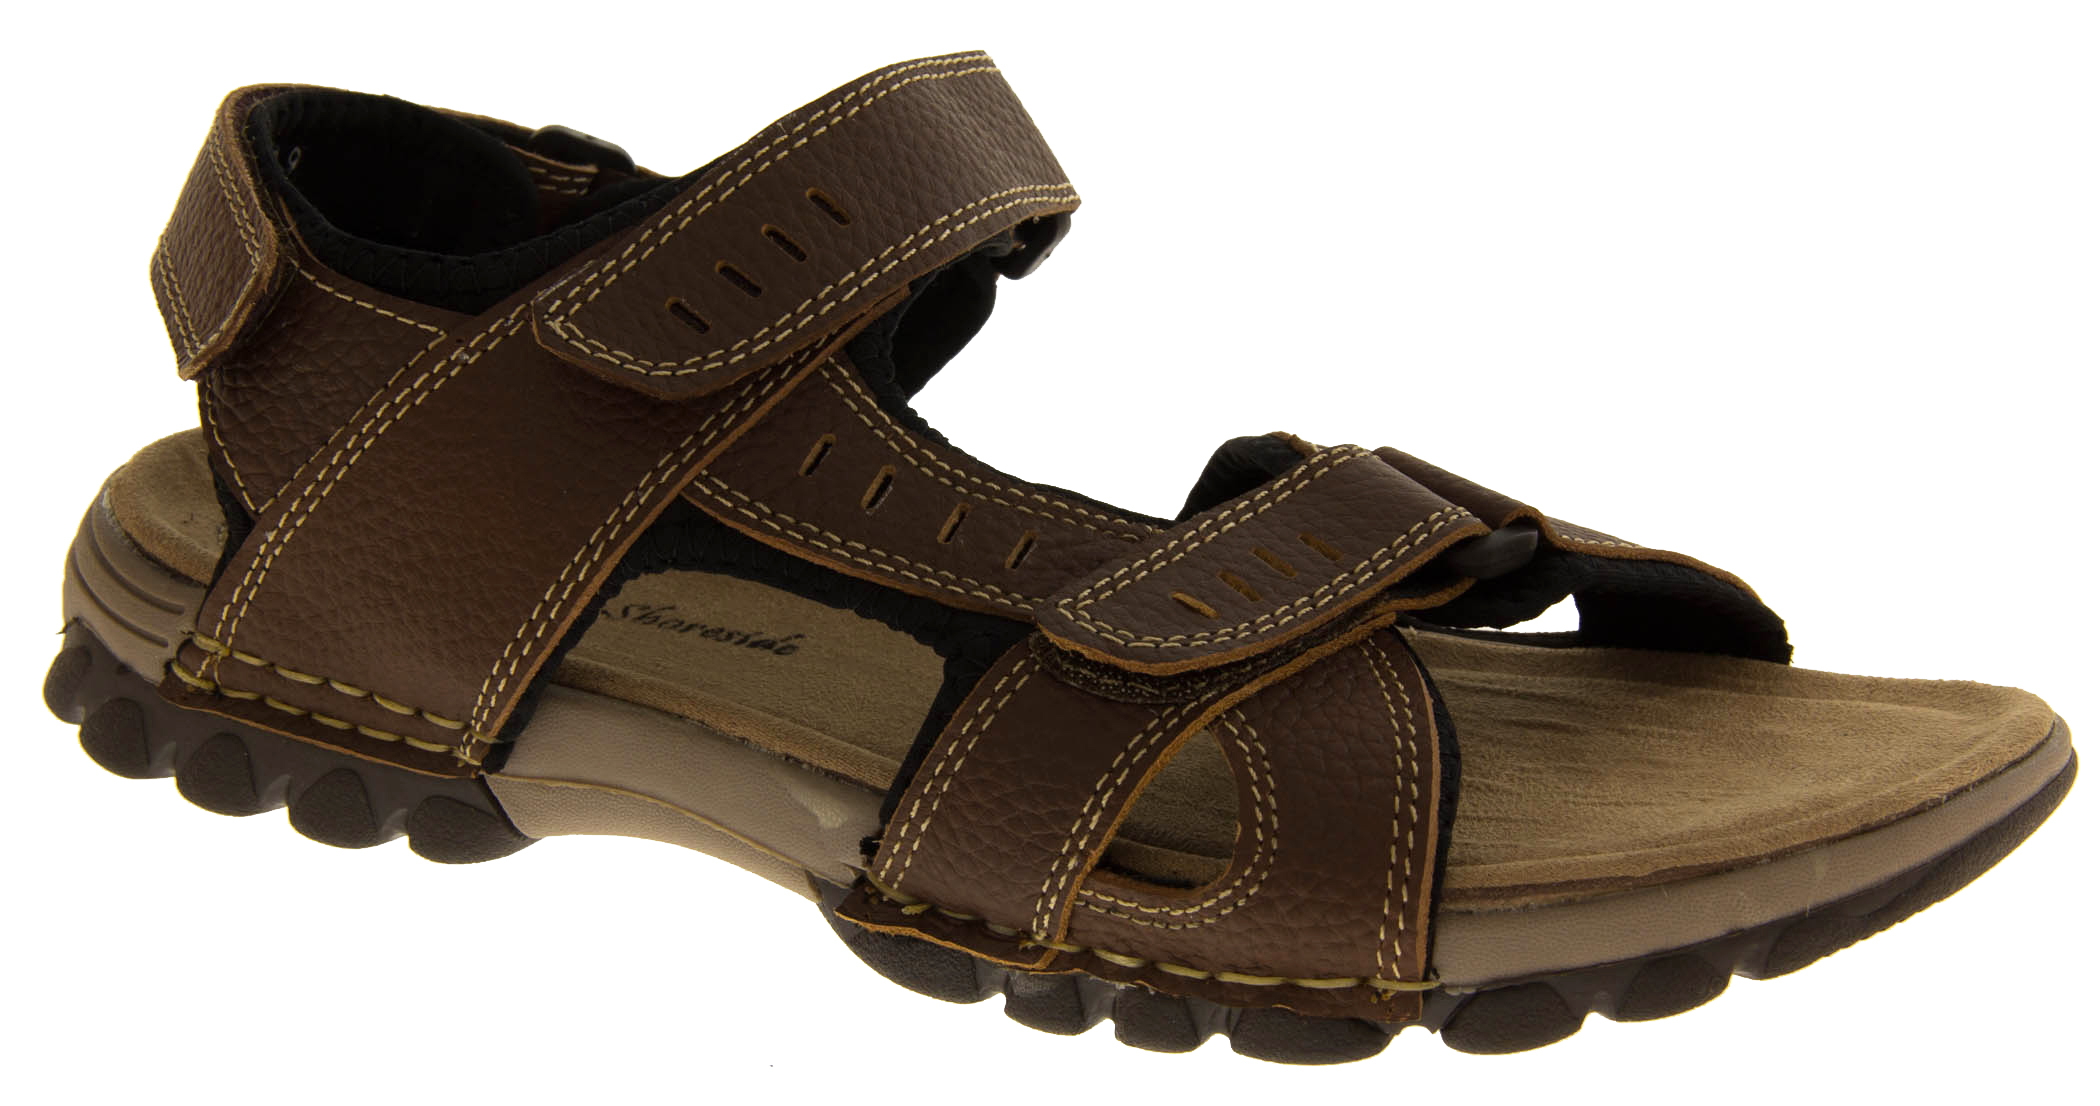 Mens LEATHER SHORESIDE Rugged Tough Open Trekking Camping Walking Sandals Size 8